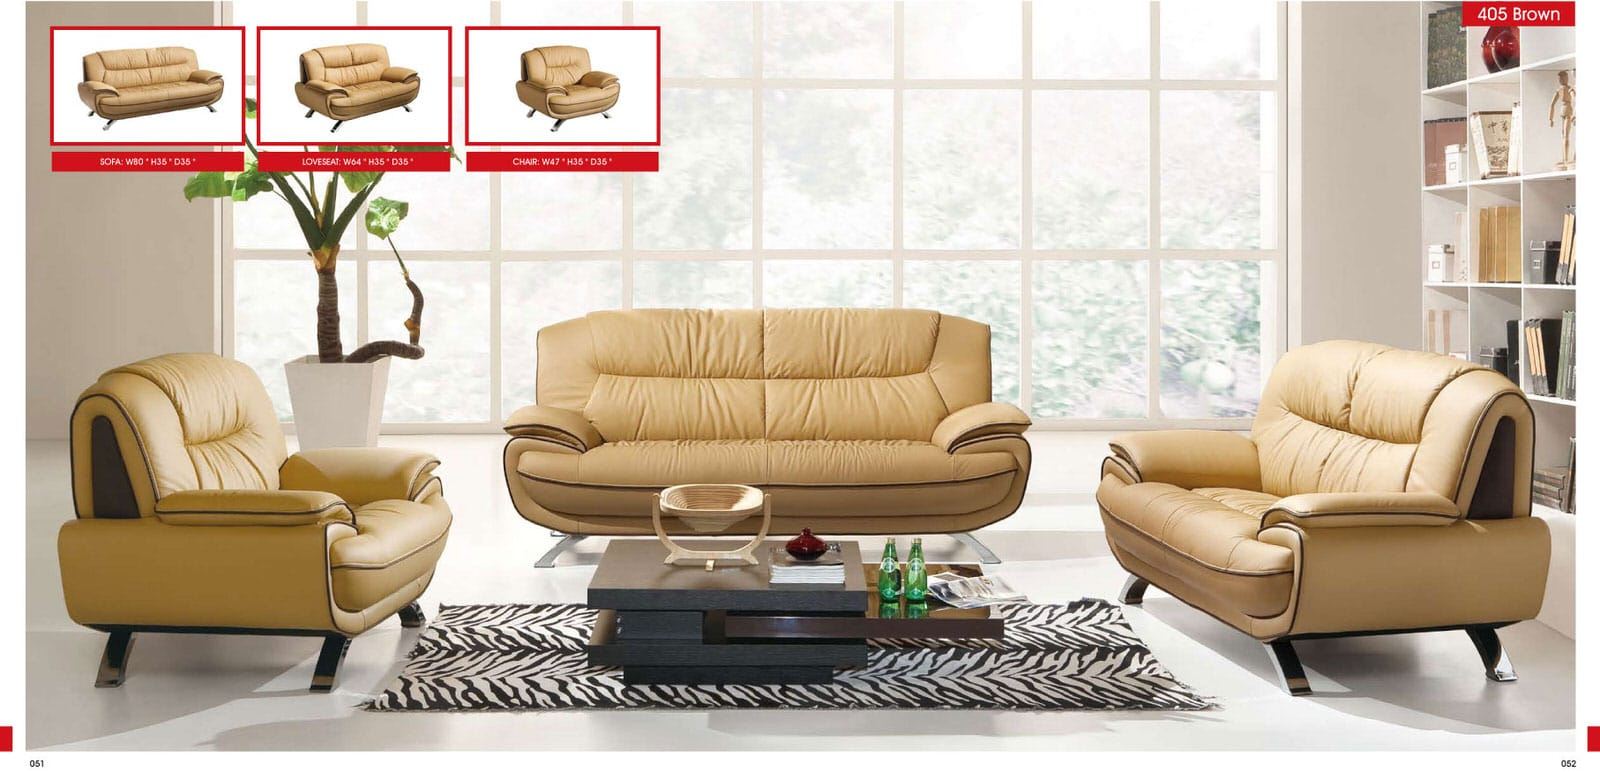 405 brown leather sofa set by esf for Couch living room furniture